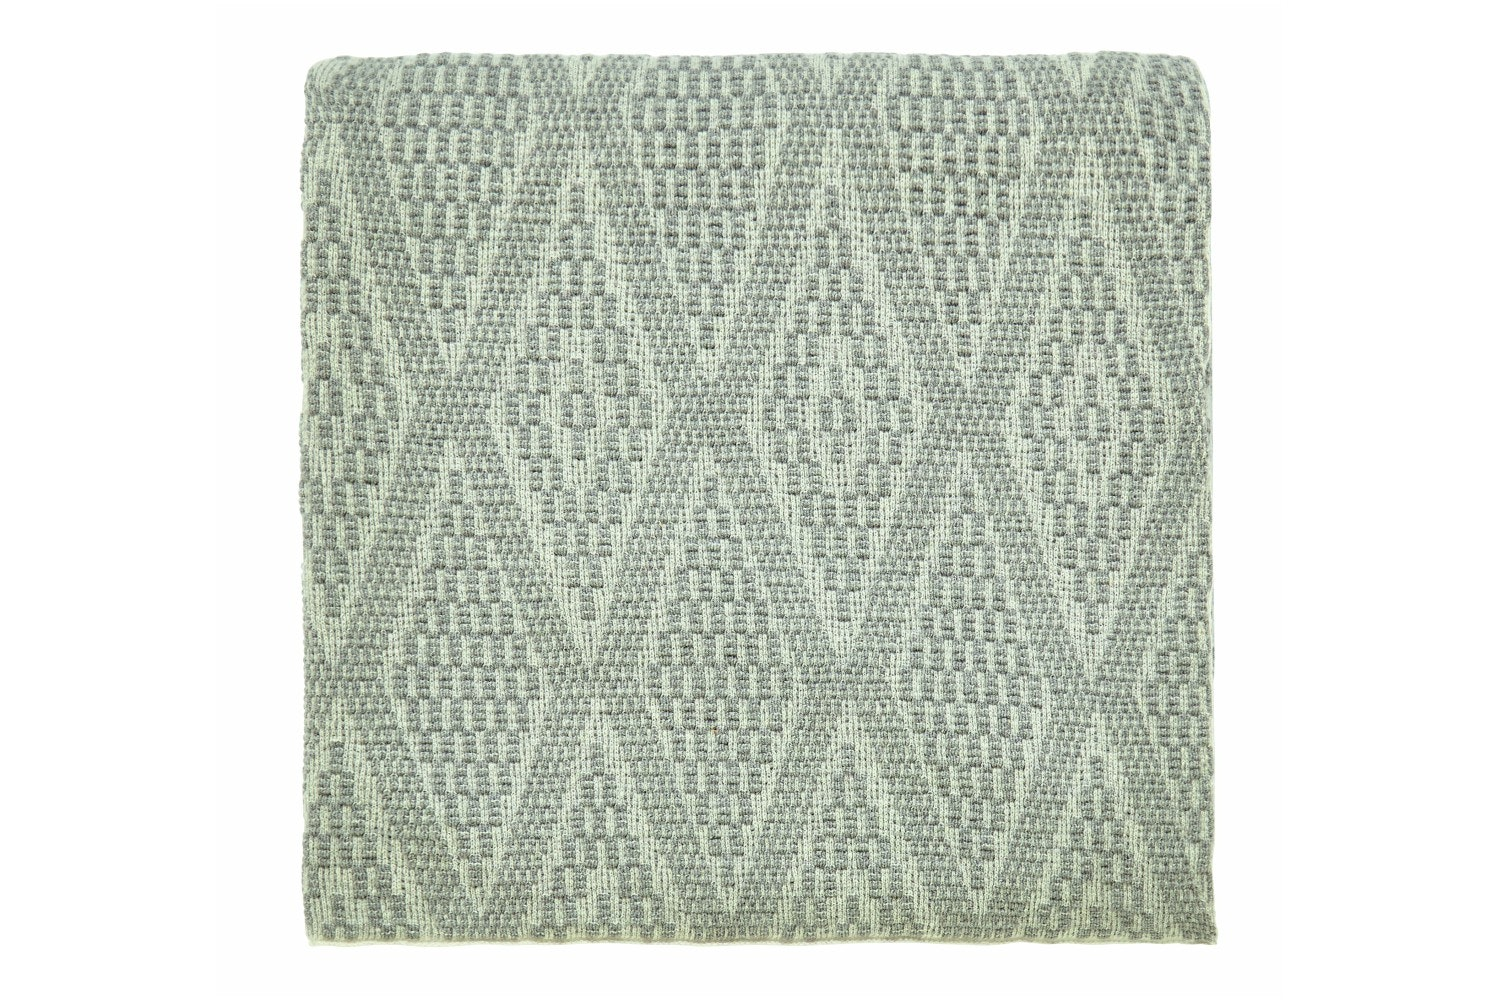 Murmur Dew Throw Grey